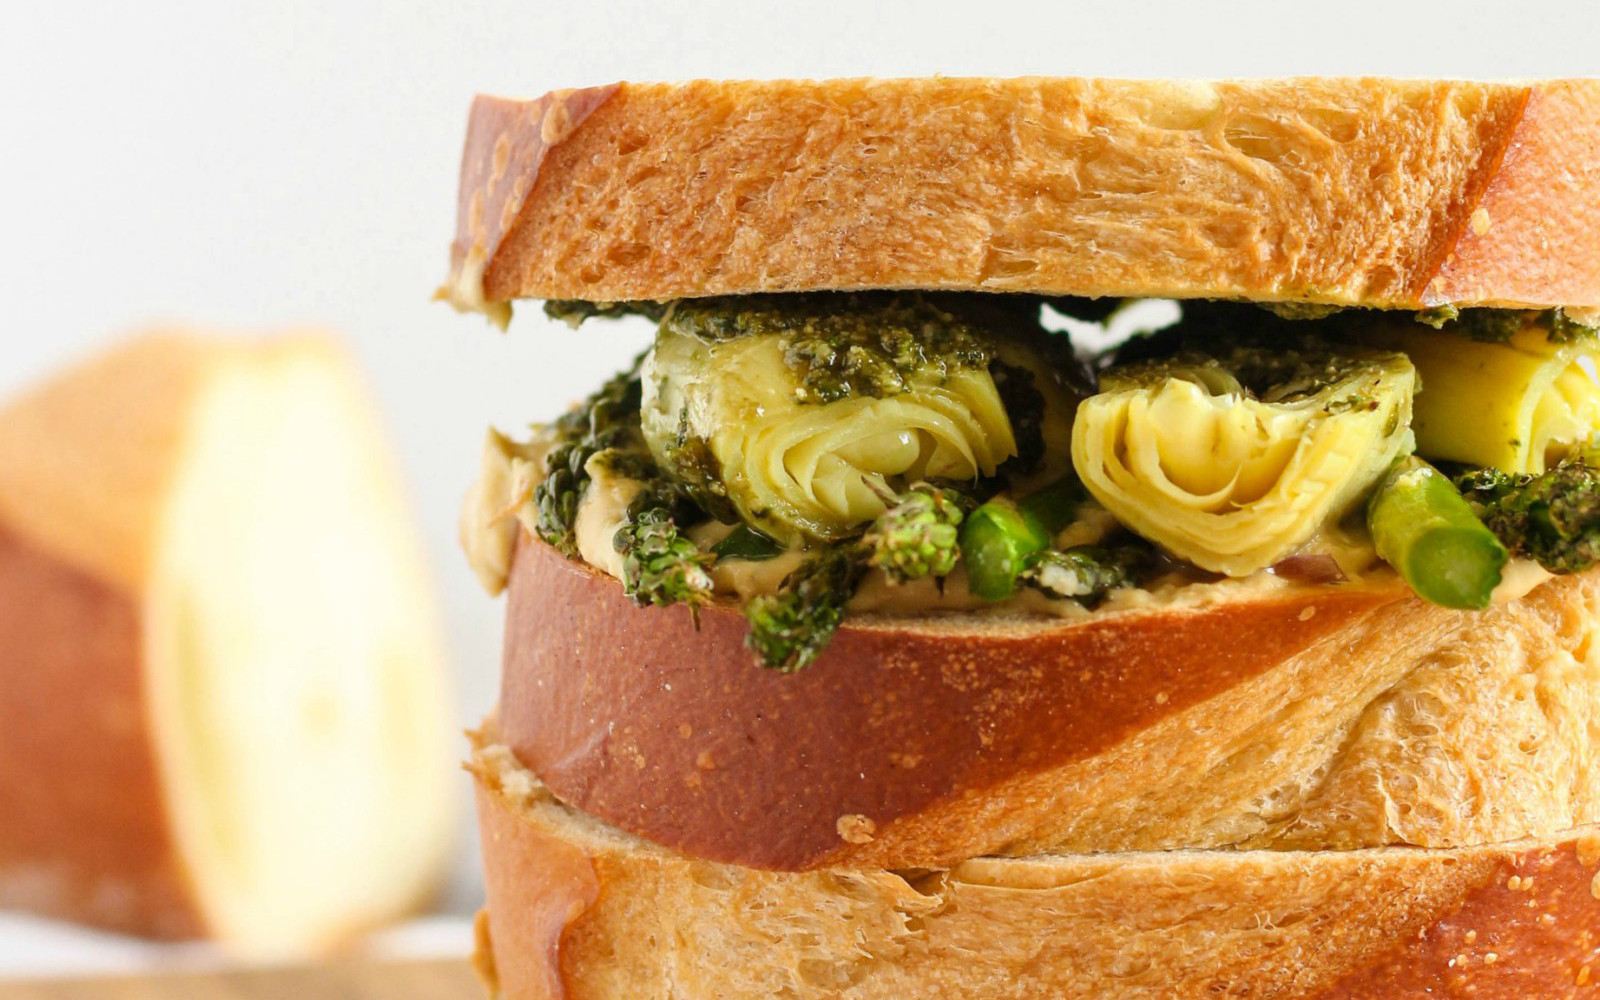 Artichoke and Pesto Hummus Sandwich